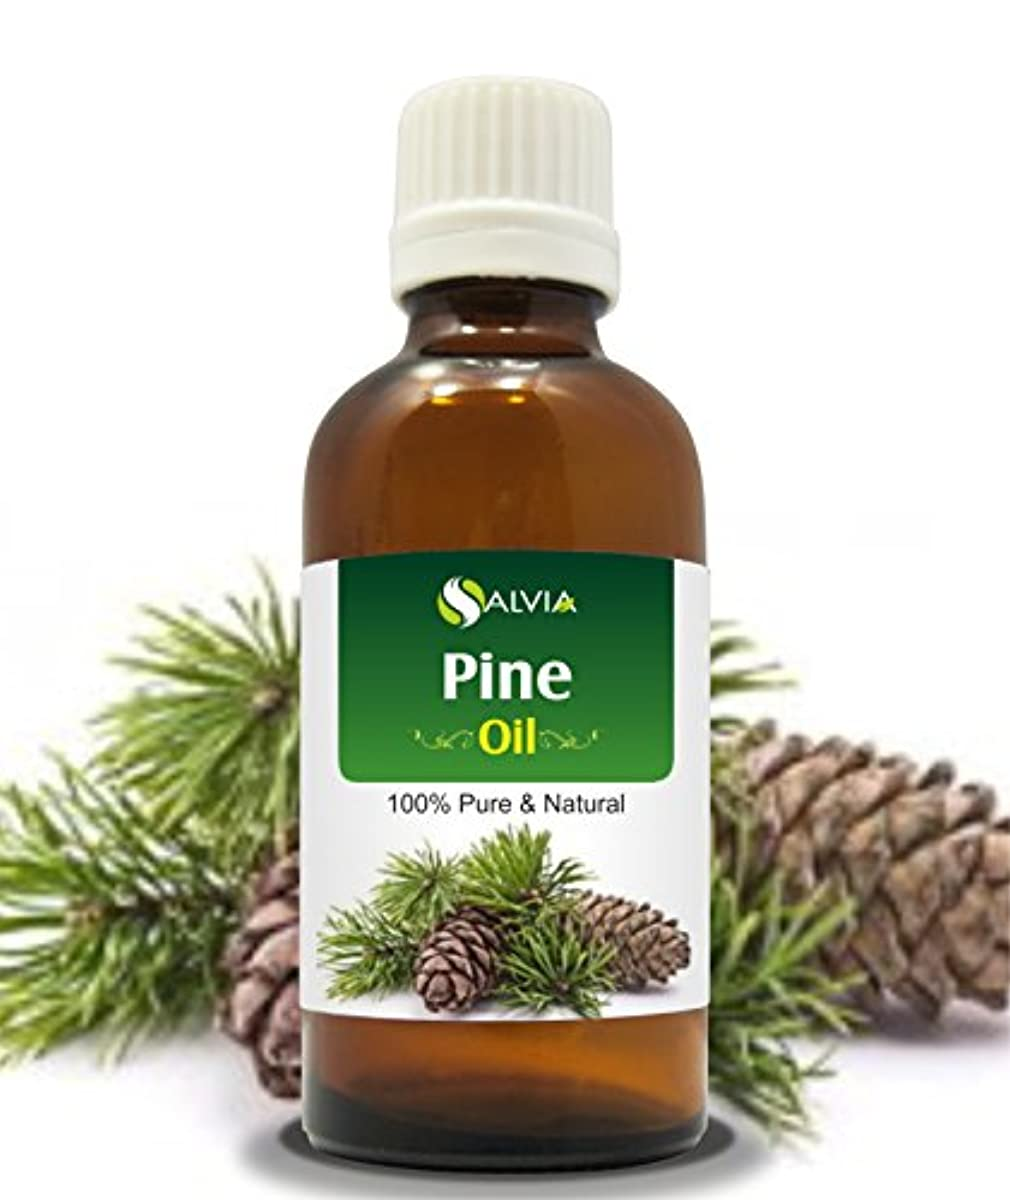 メトロポリタン抜粋クライストチャーチPINE OIL 100% NATURAL PURE UNDILUTED UNCUT ESSENTIAL OIL 15ML